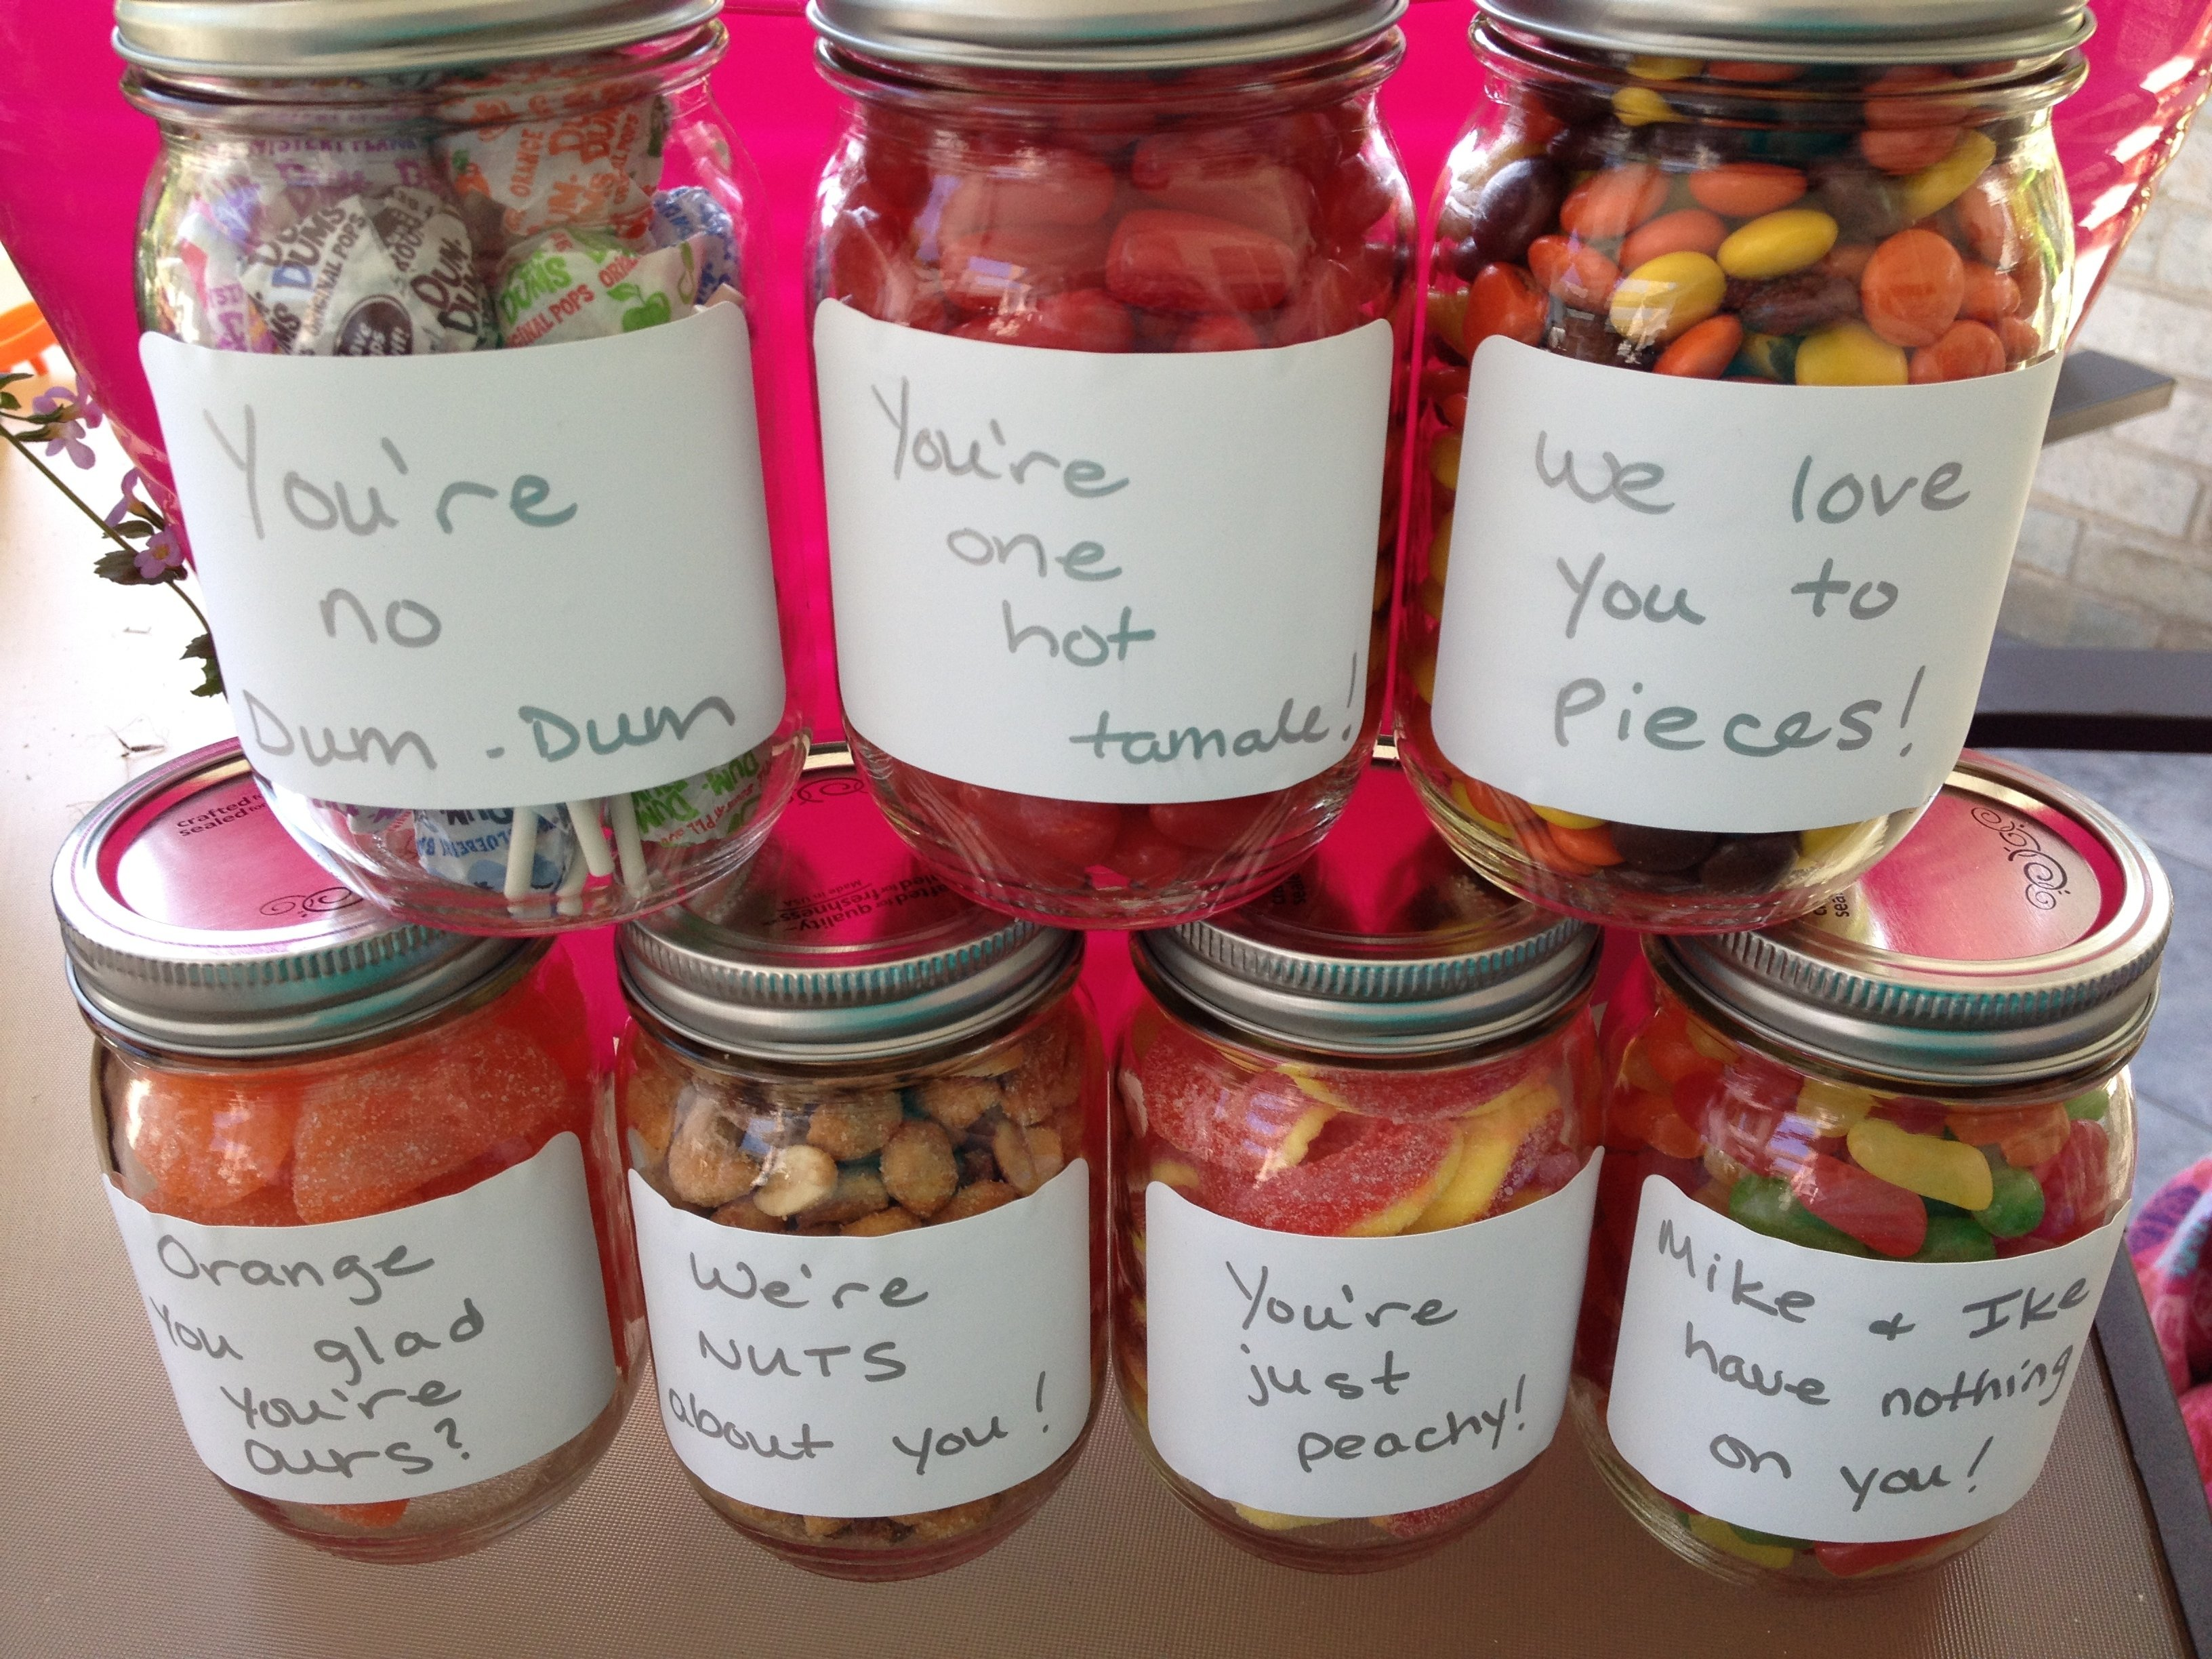 10 Perfect Gift Ideas Using Mason Jars perfect gift for dad candy in mason jars with cute sayings diy 1 2020